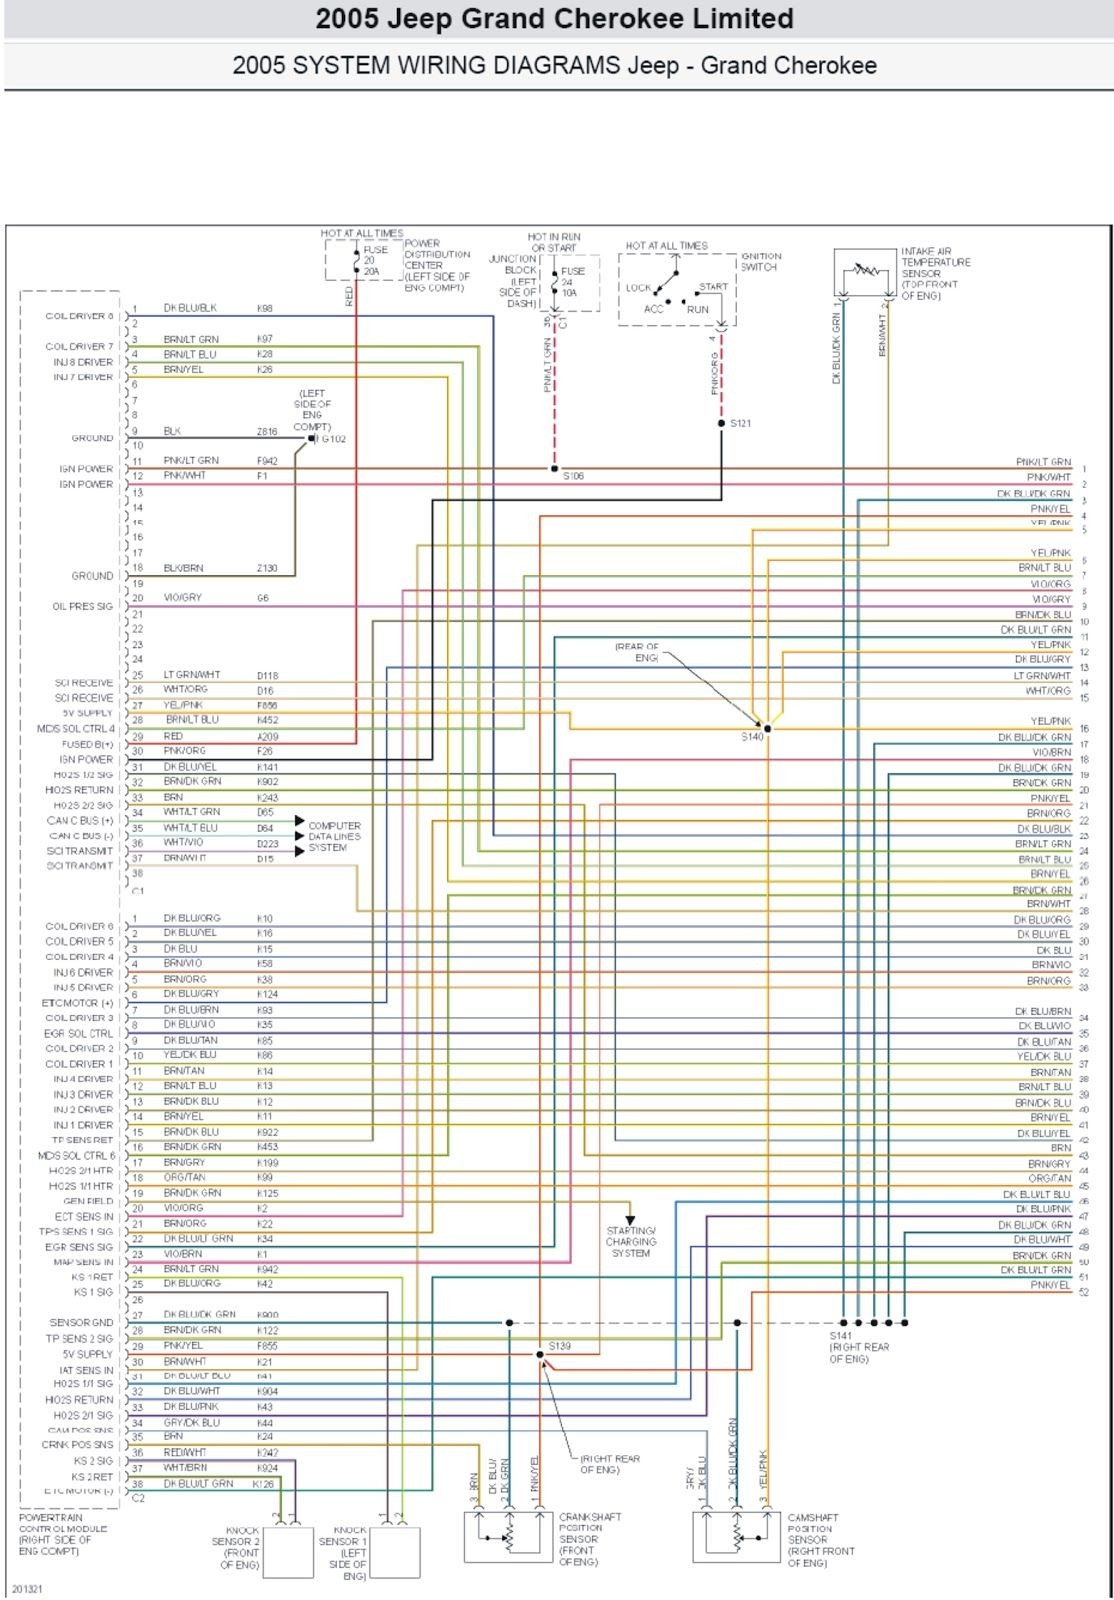 2004 jeep grand cherokee cooling fan wiring diagram unique wiring beautiful 2000 jeep grand cherokee radio wiring diagram 31 bulldog security wiring diagram with 2000 asfbconference2016 Choice Image